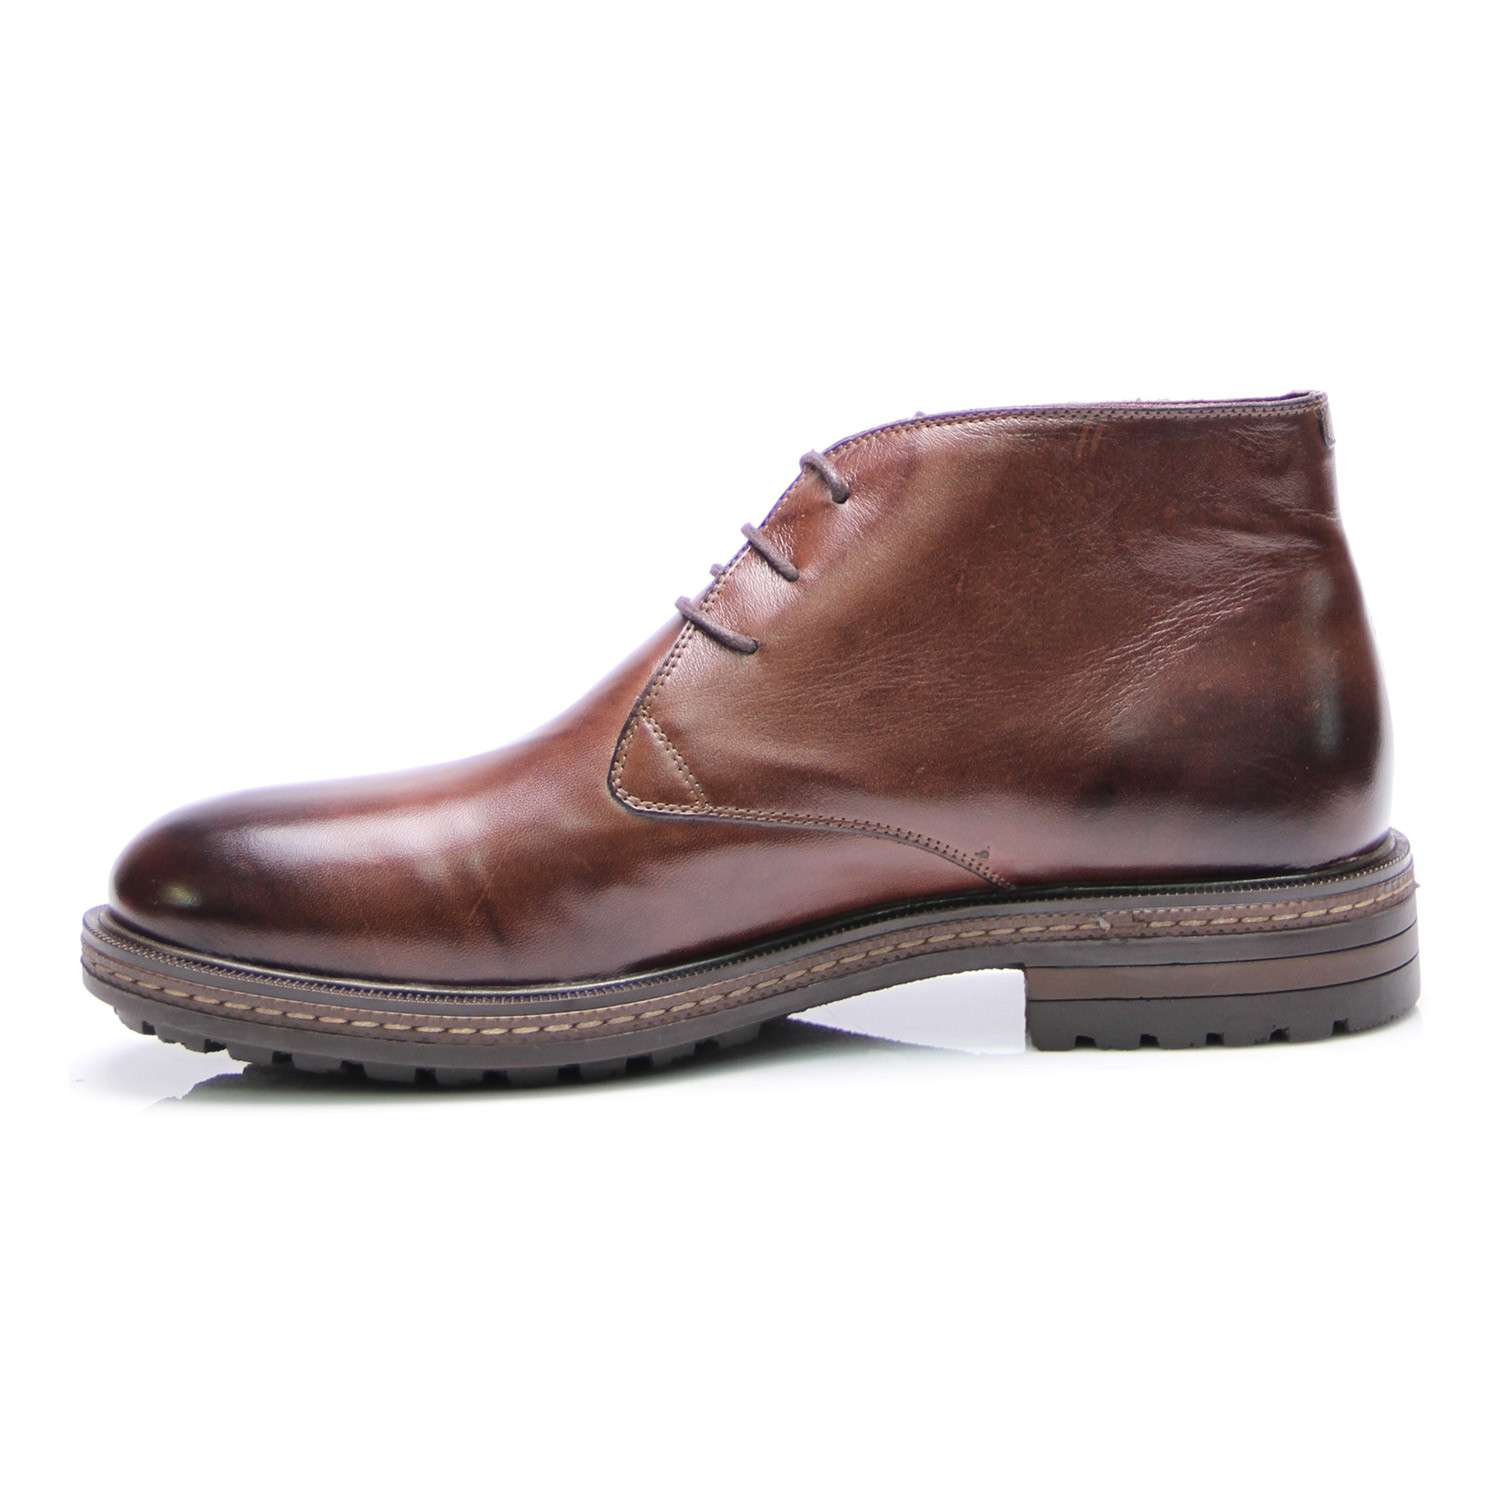 lace up chukka boot brown 40 e goisto touch